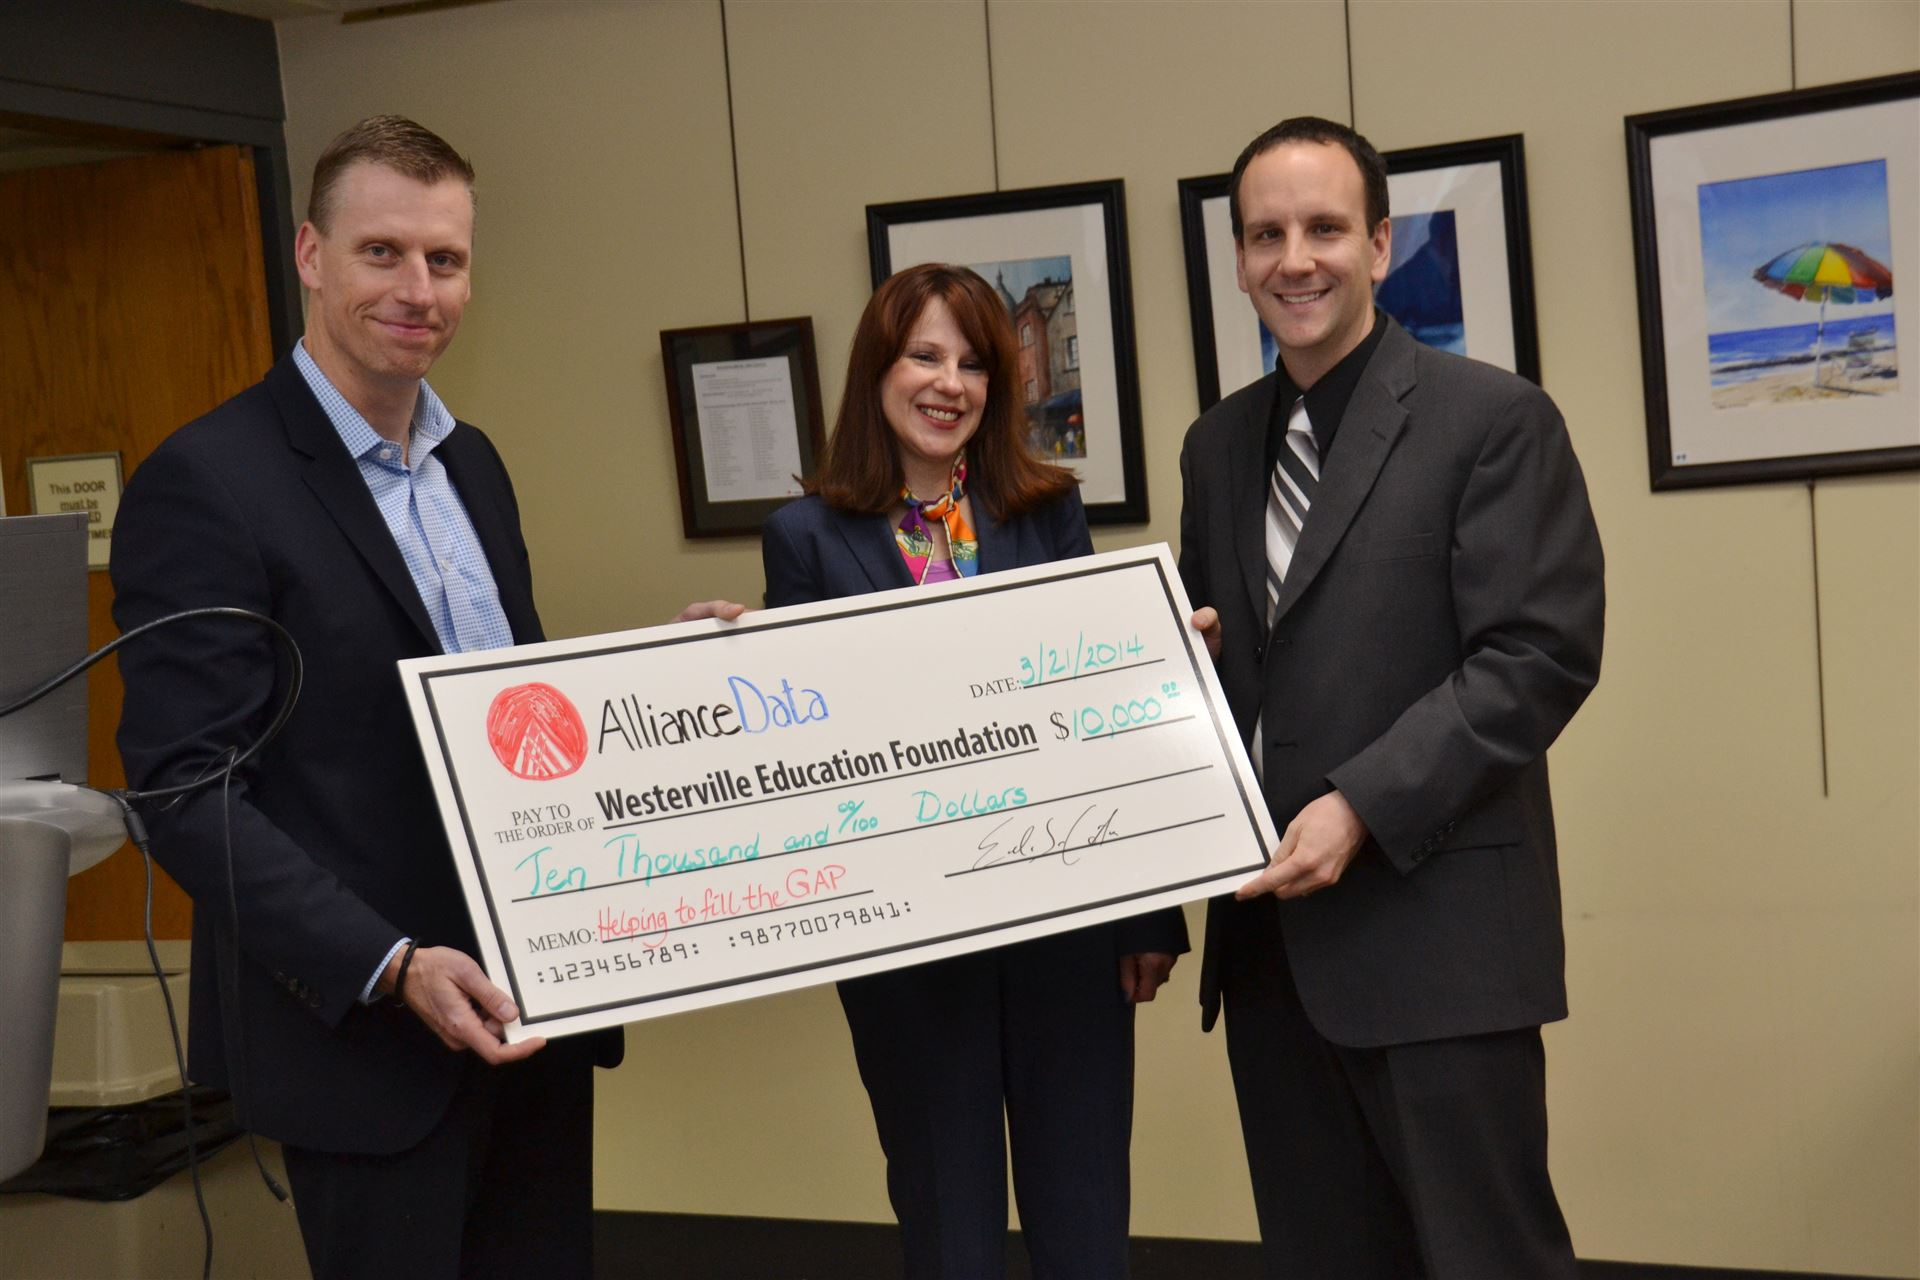 Westerville Education Foundation donation acceptance